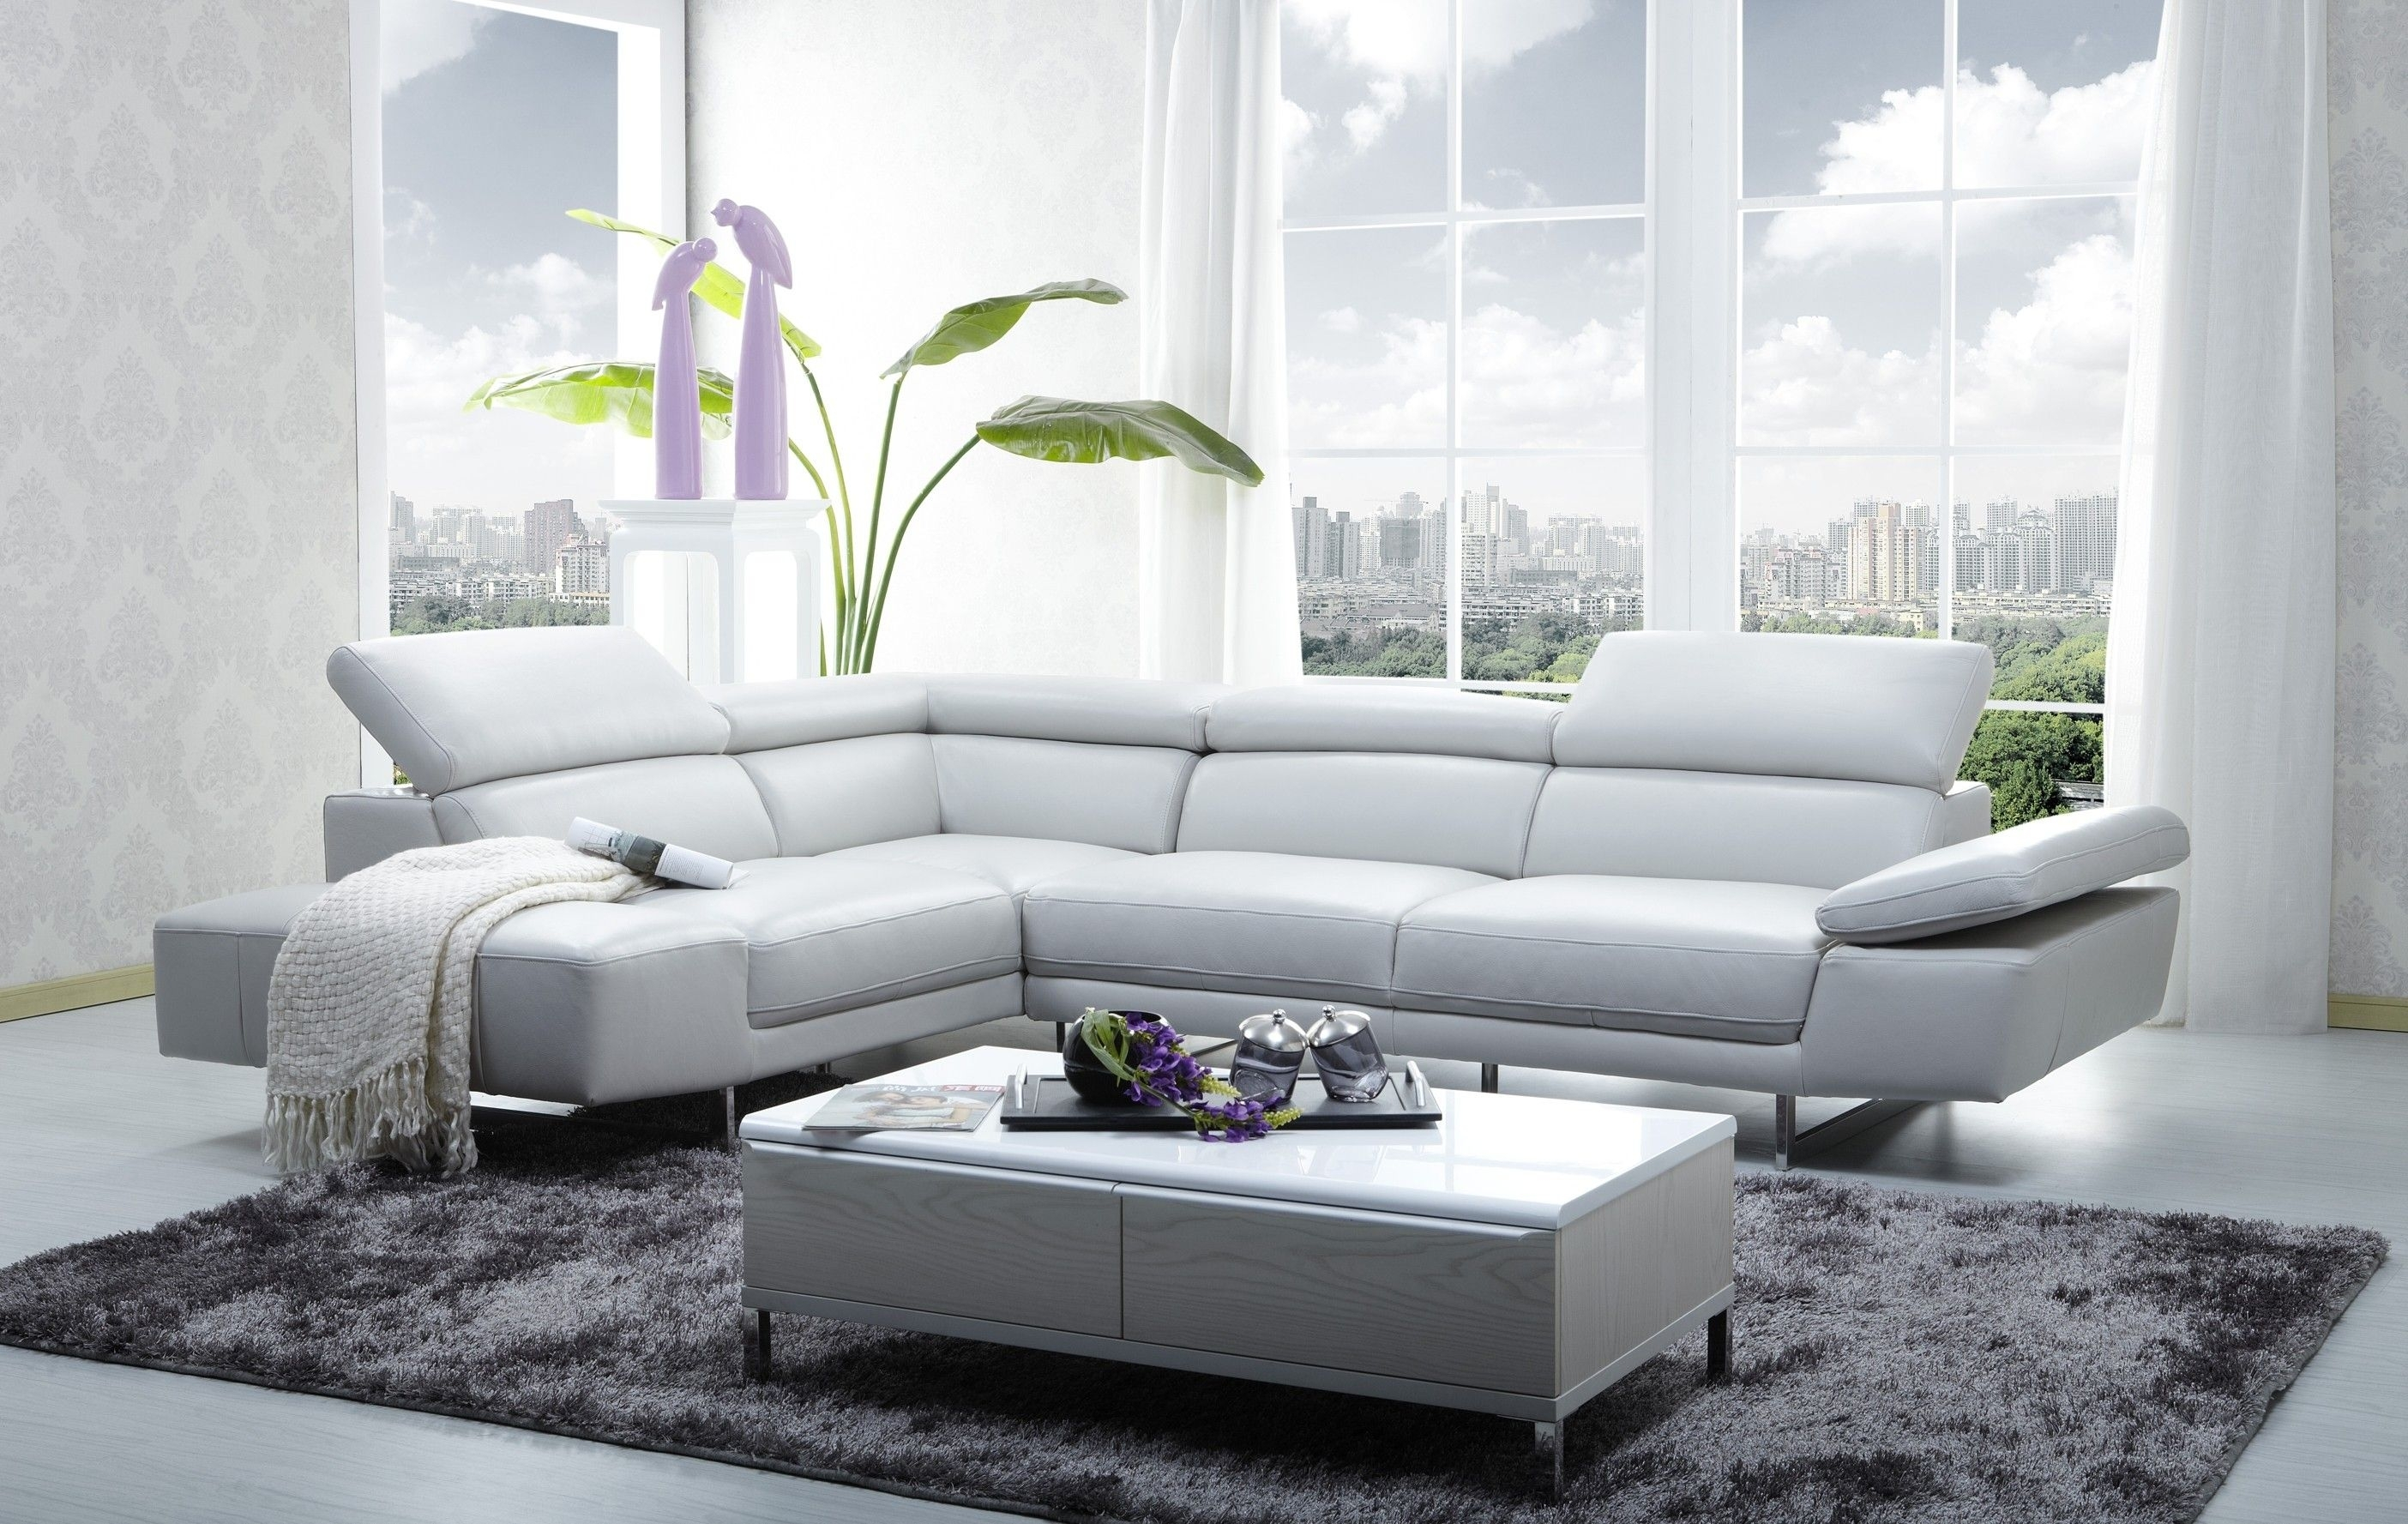 Cool Sectional Sofas Chicago , Luxury Sectional Sofas Chicago 44 Pertaining To Sectional Sofas At Chicago (View 4 of 10)